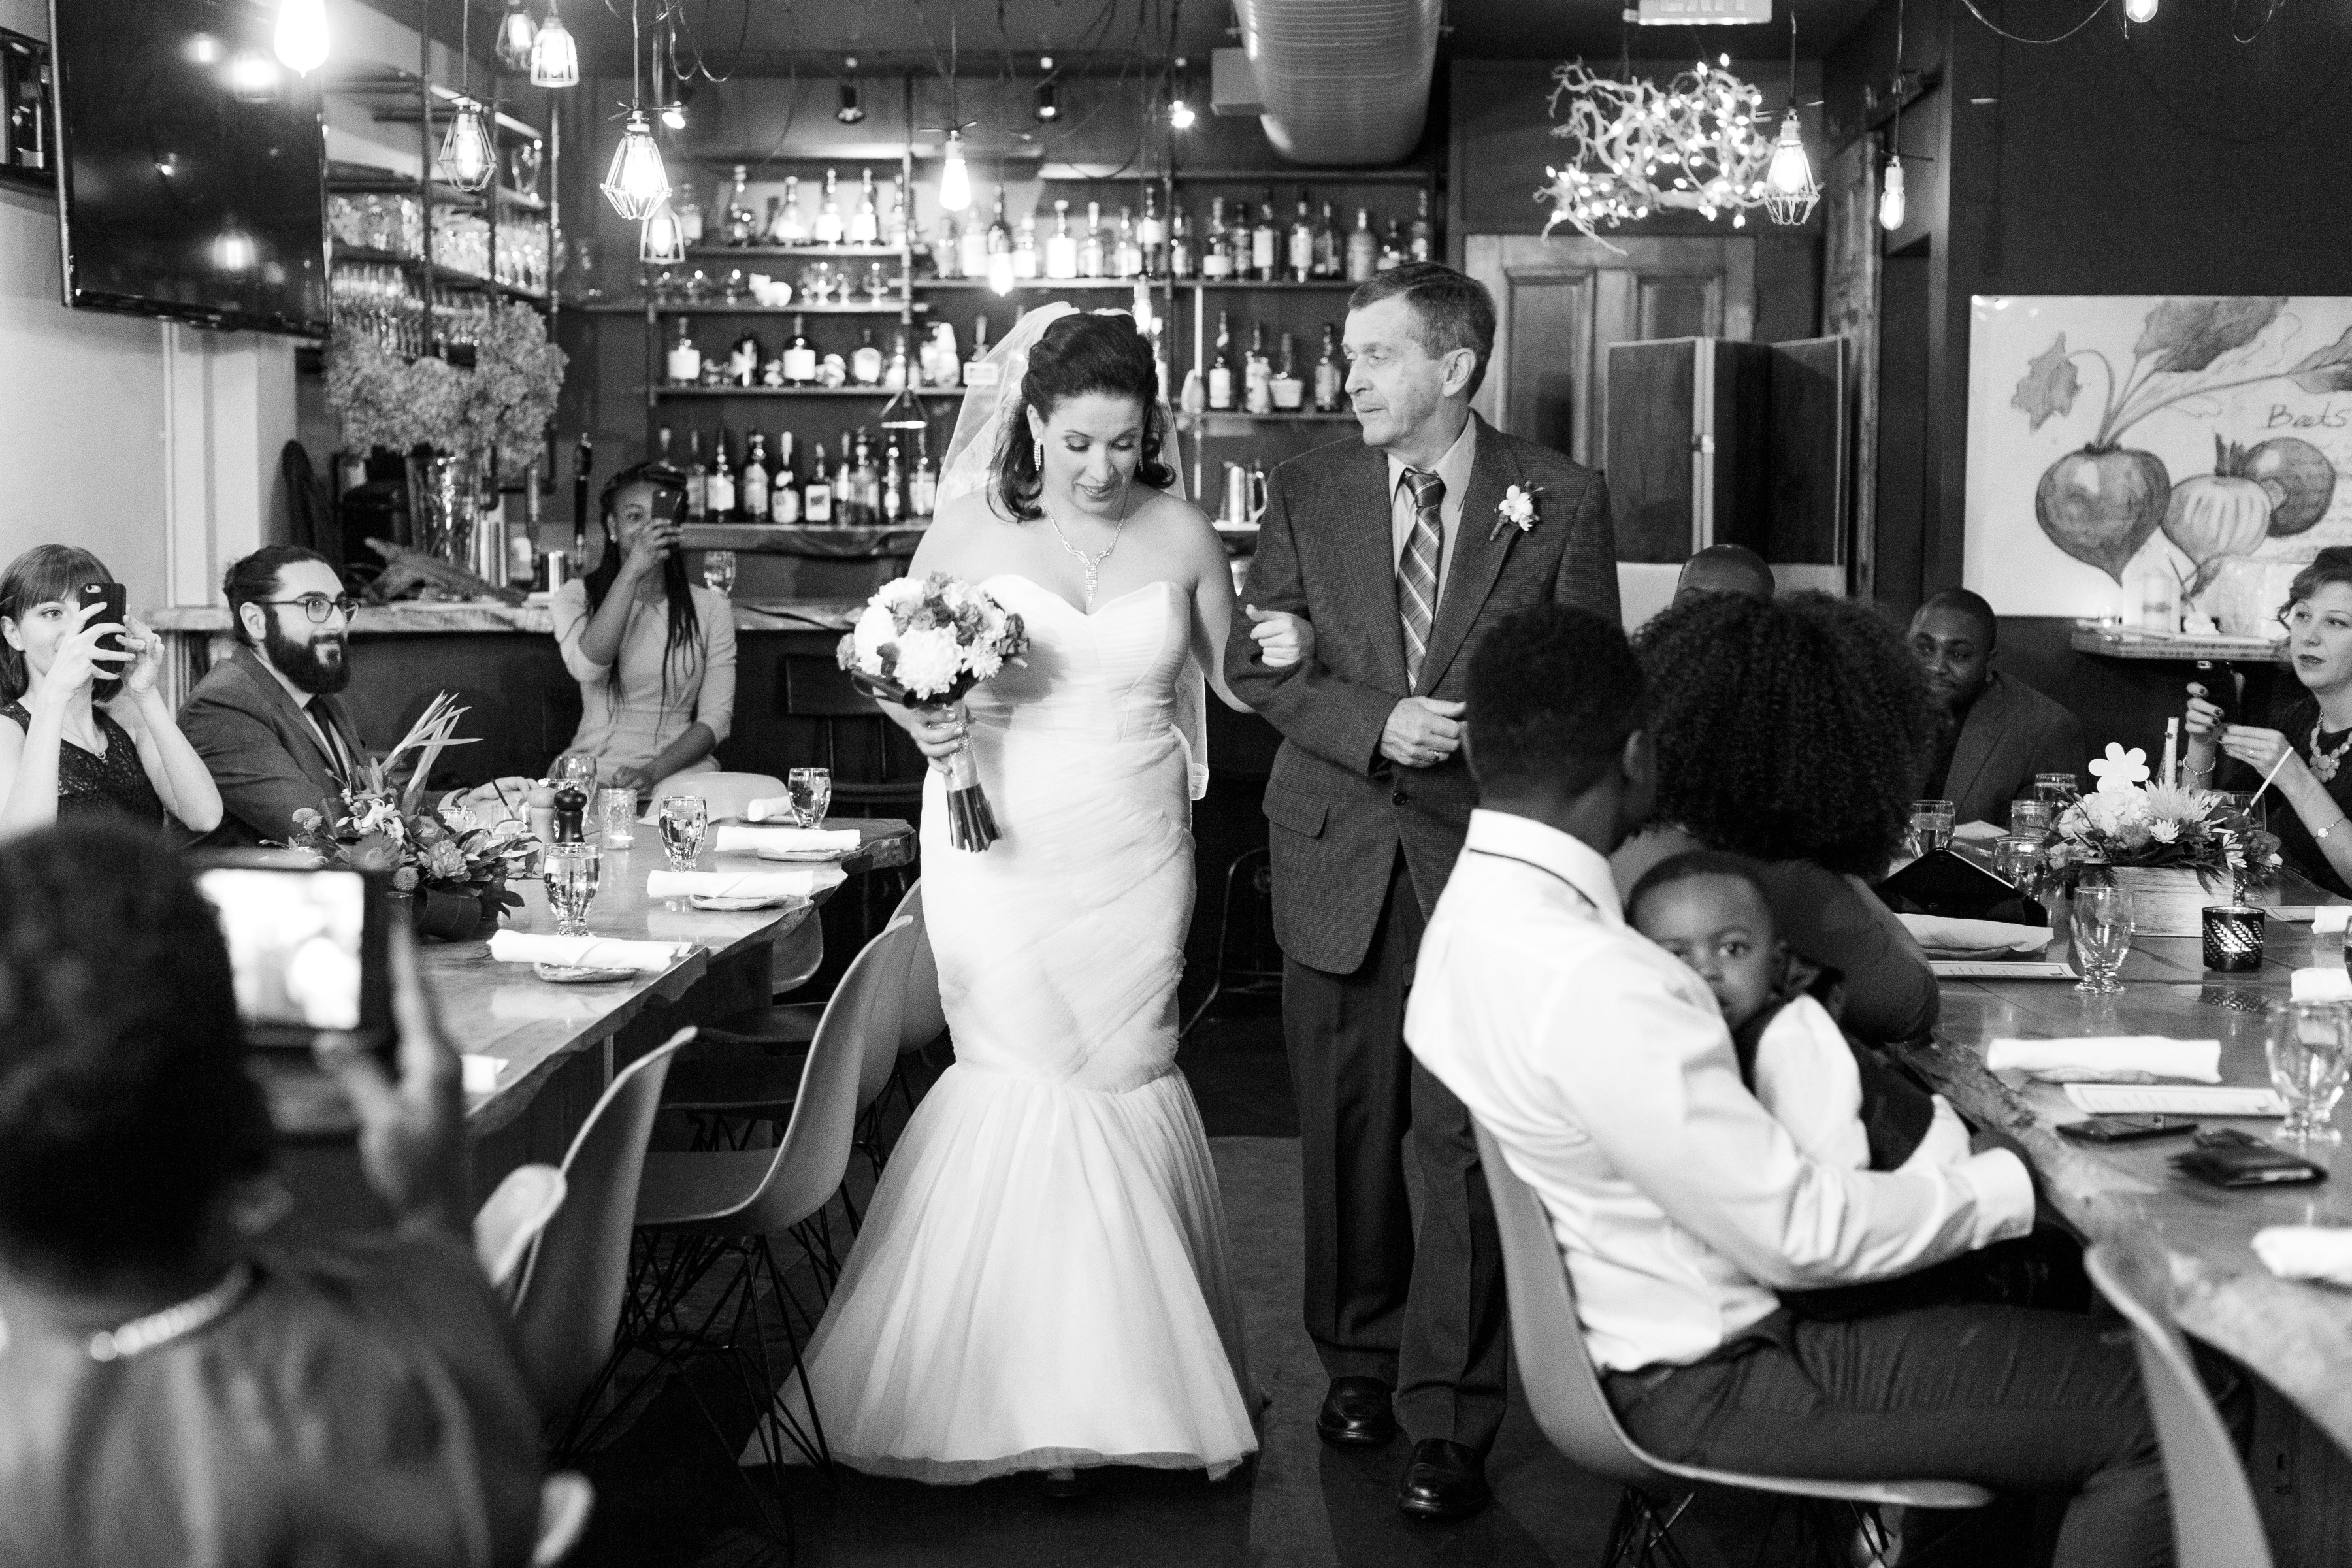 table-40-wedding-ceremony-by-boyophotography